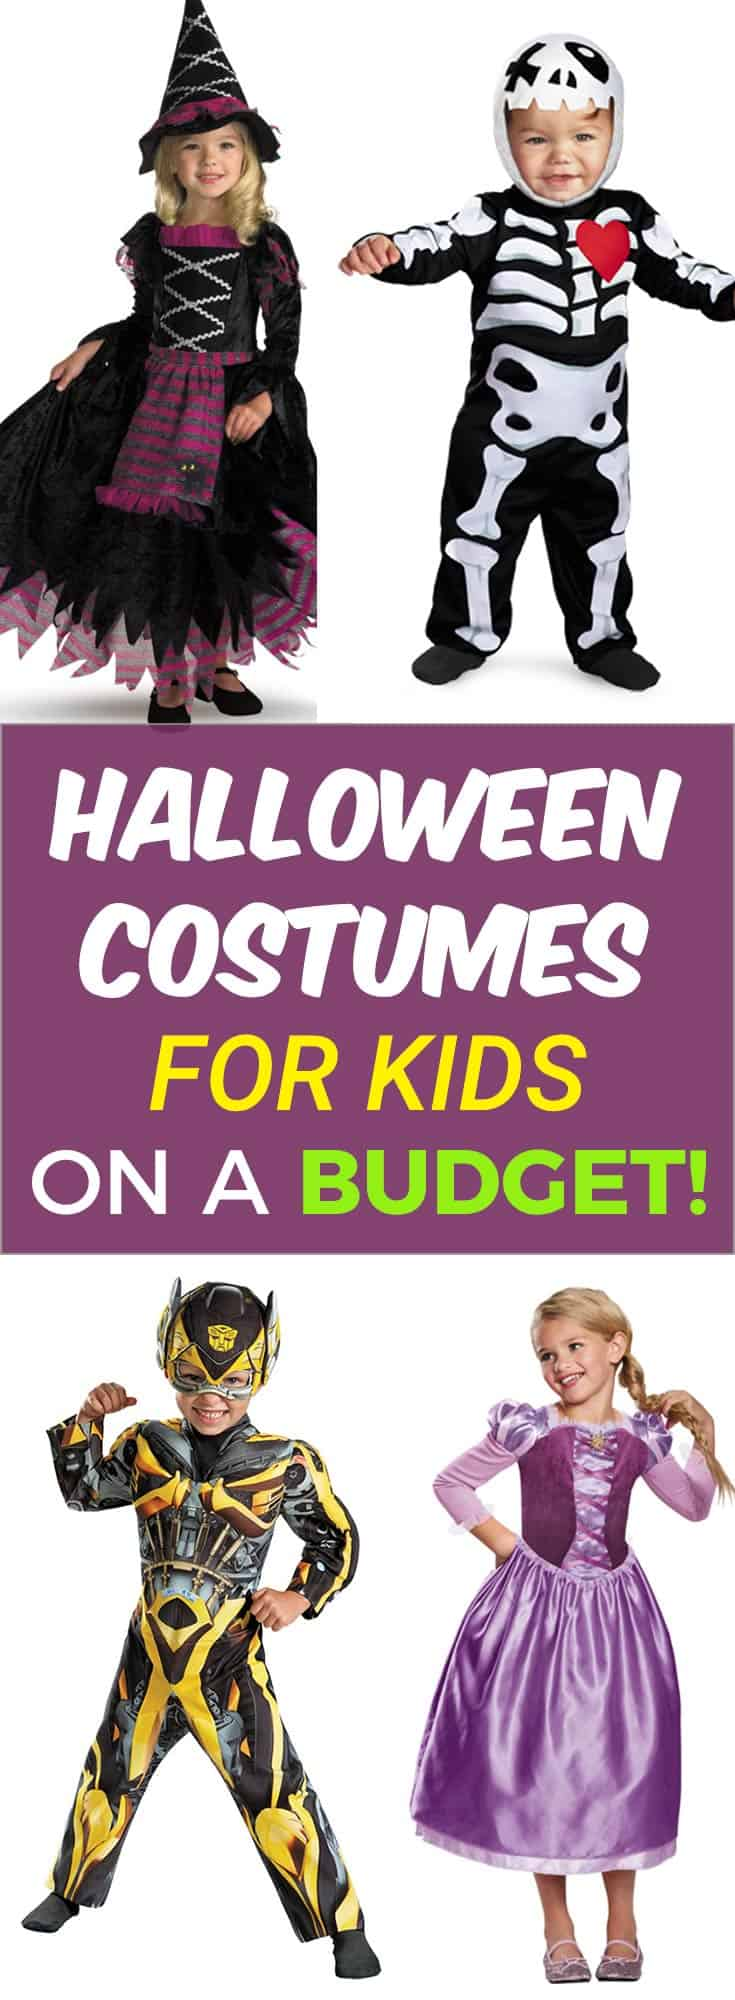 """Halloween Costumes for Kids on a Budget! With my #affiliate link you get an EXCLUSIVE OFFER! 25% off! Use code """"spooky25cj17""""!"""